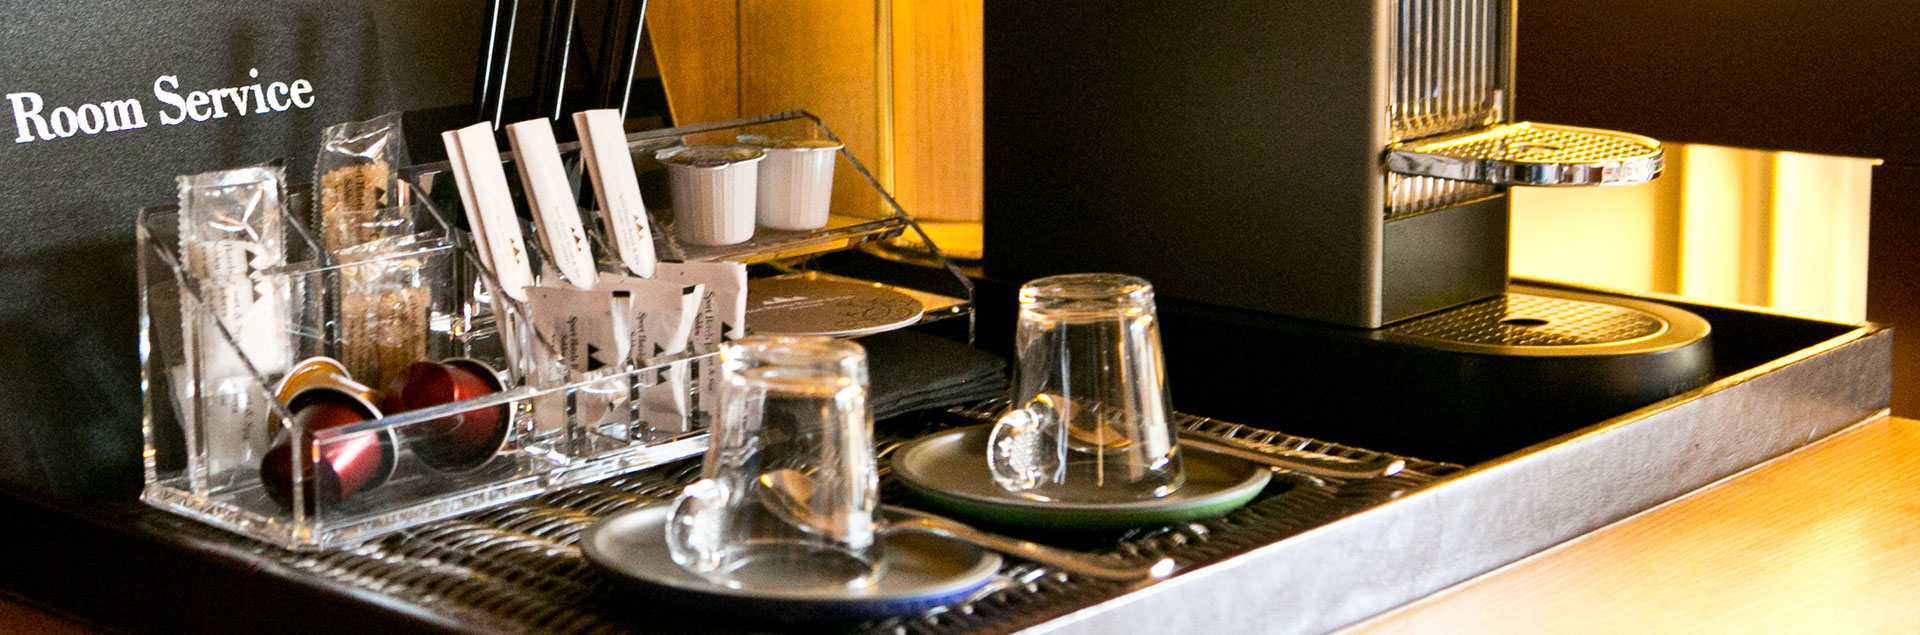 All rooms include coffee machine, tea and water